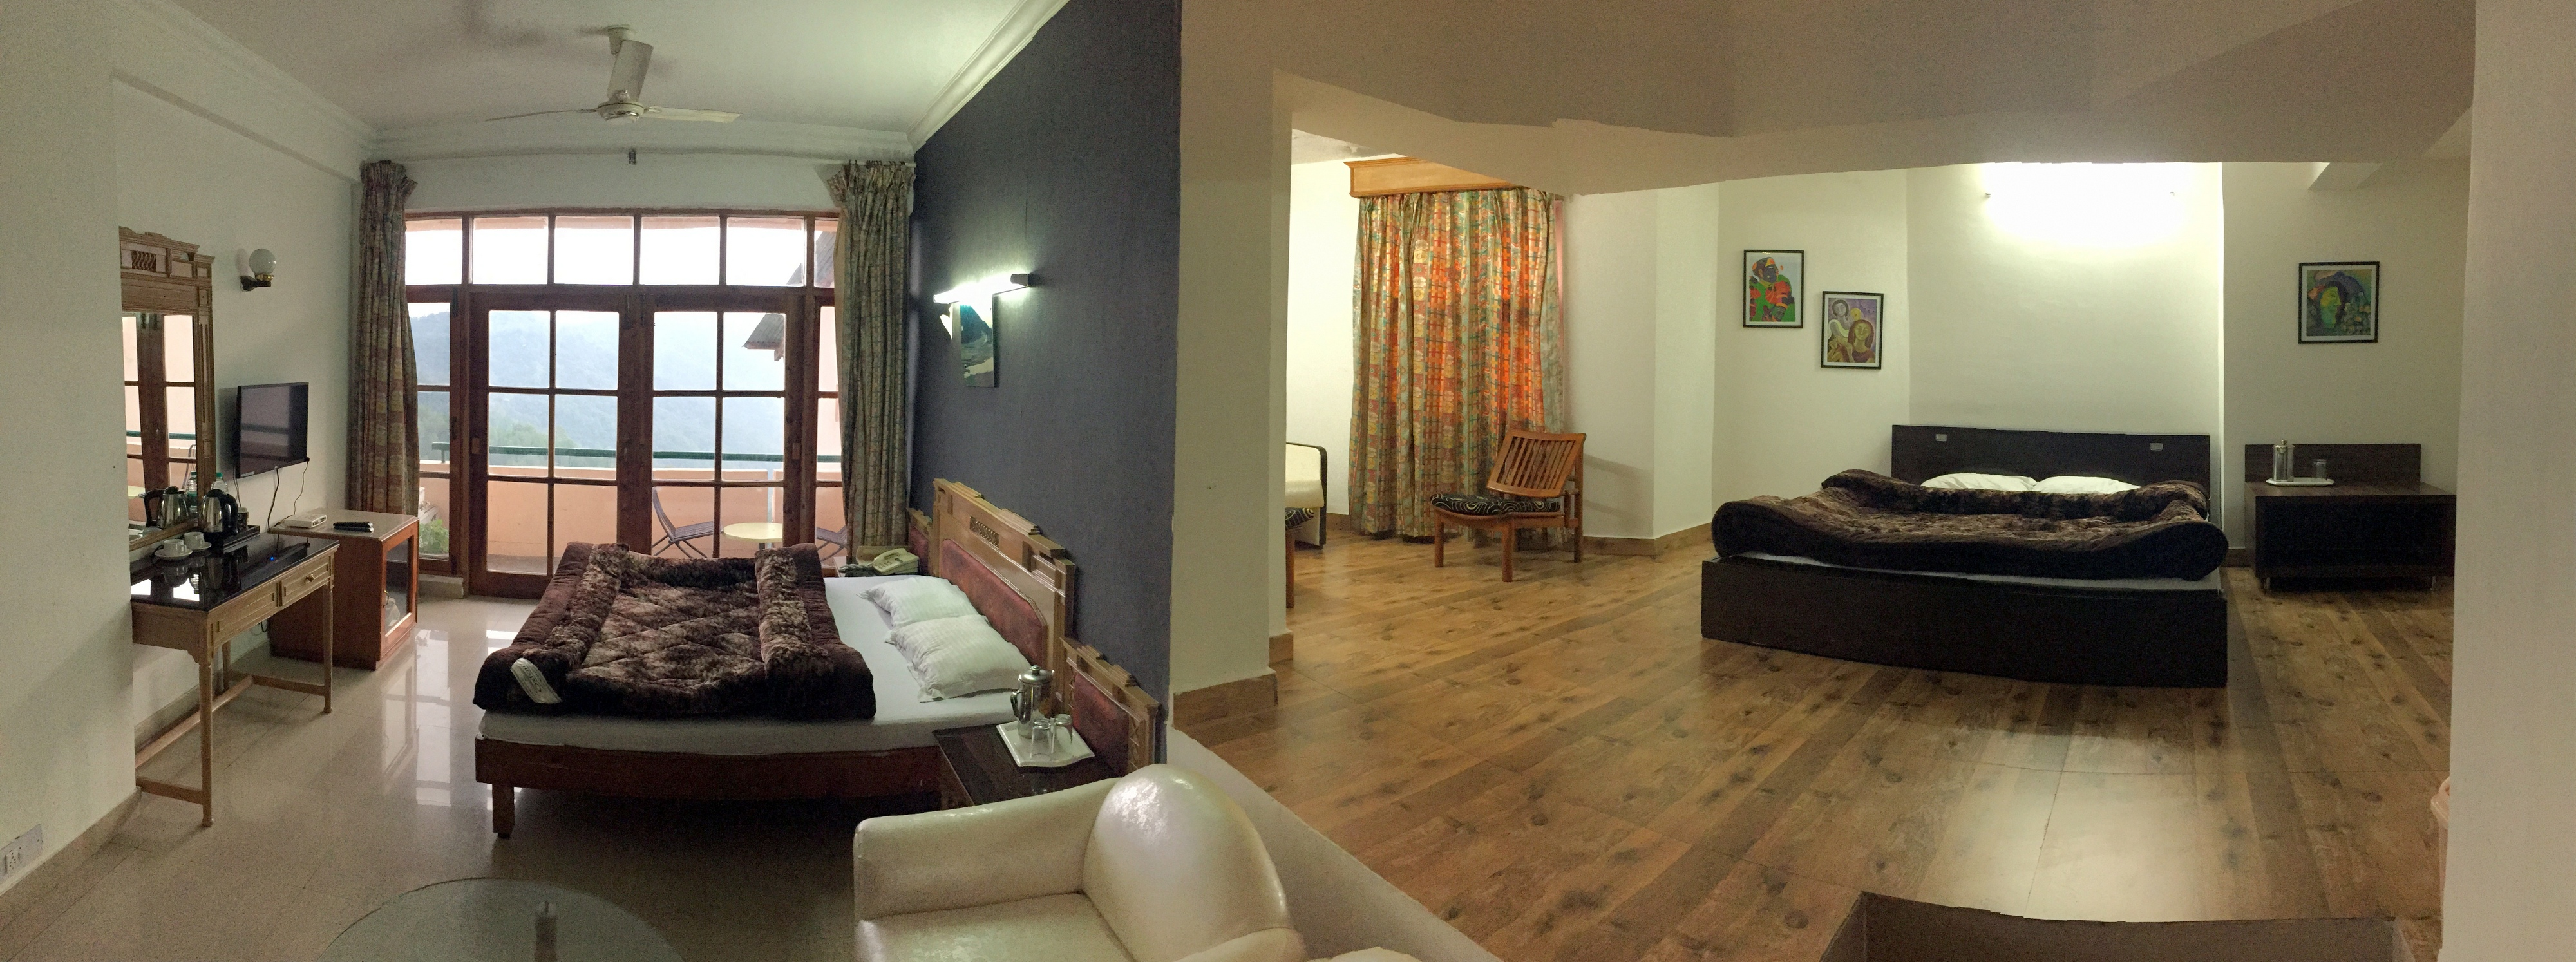 Family Suite Room at Chail Residency